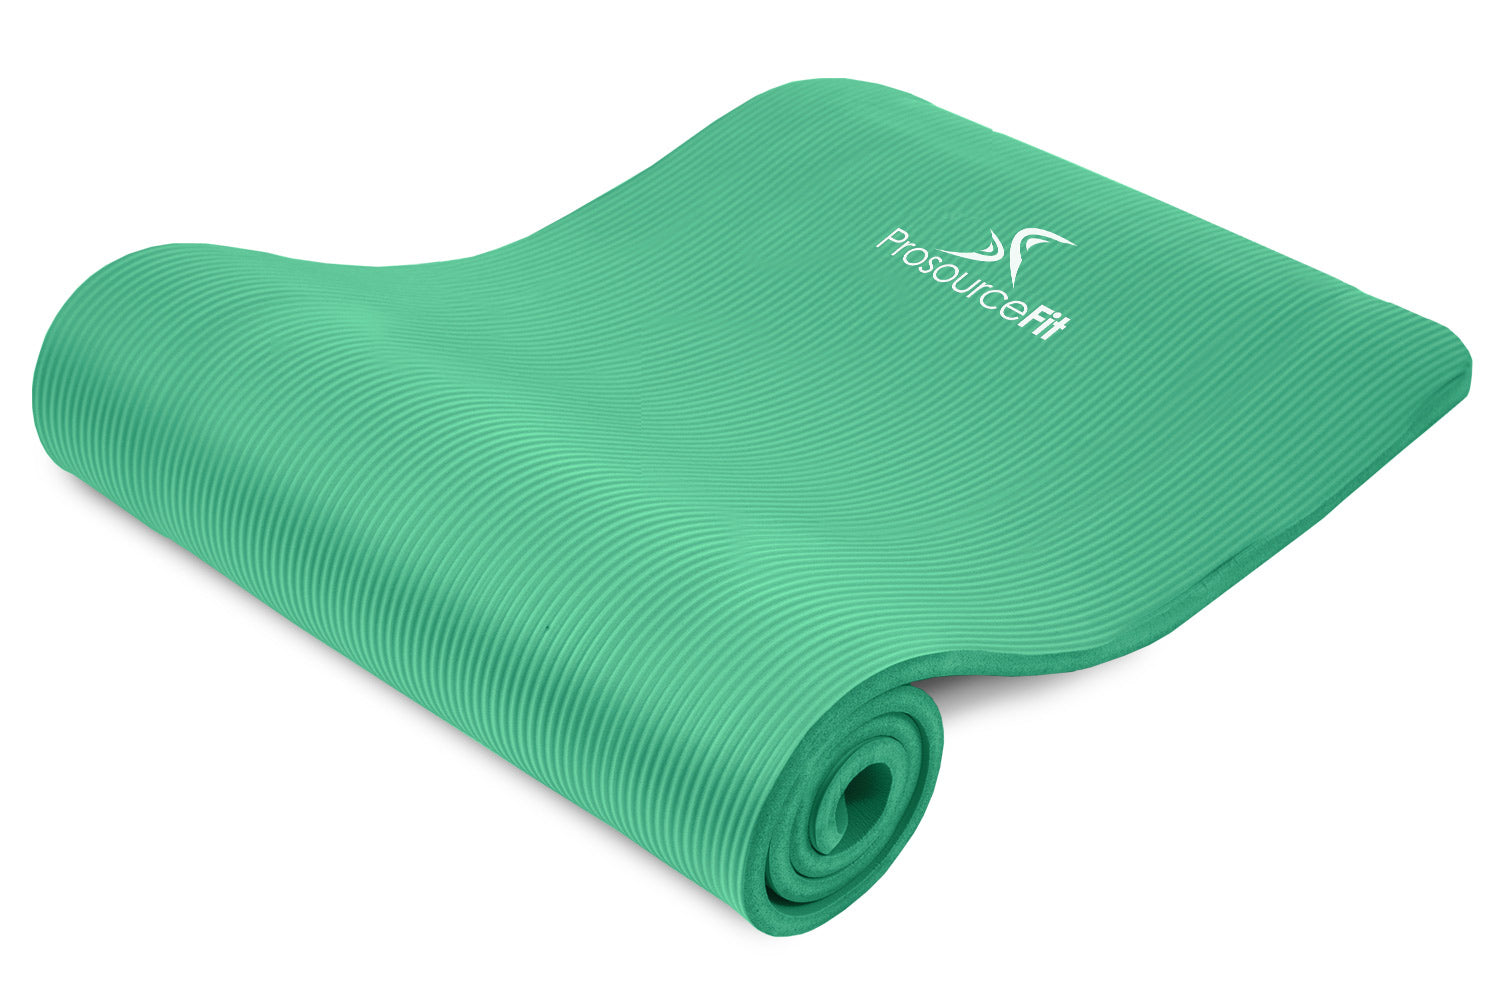 Green Extra Thick Yoga and Pilates Mat 1/2 inch